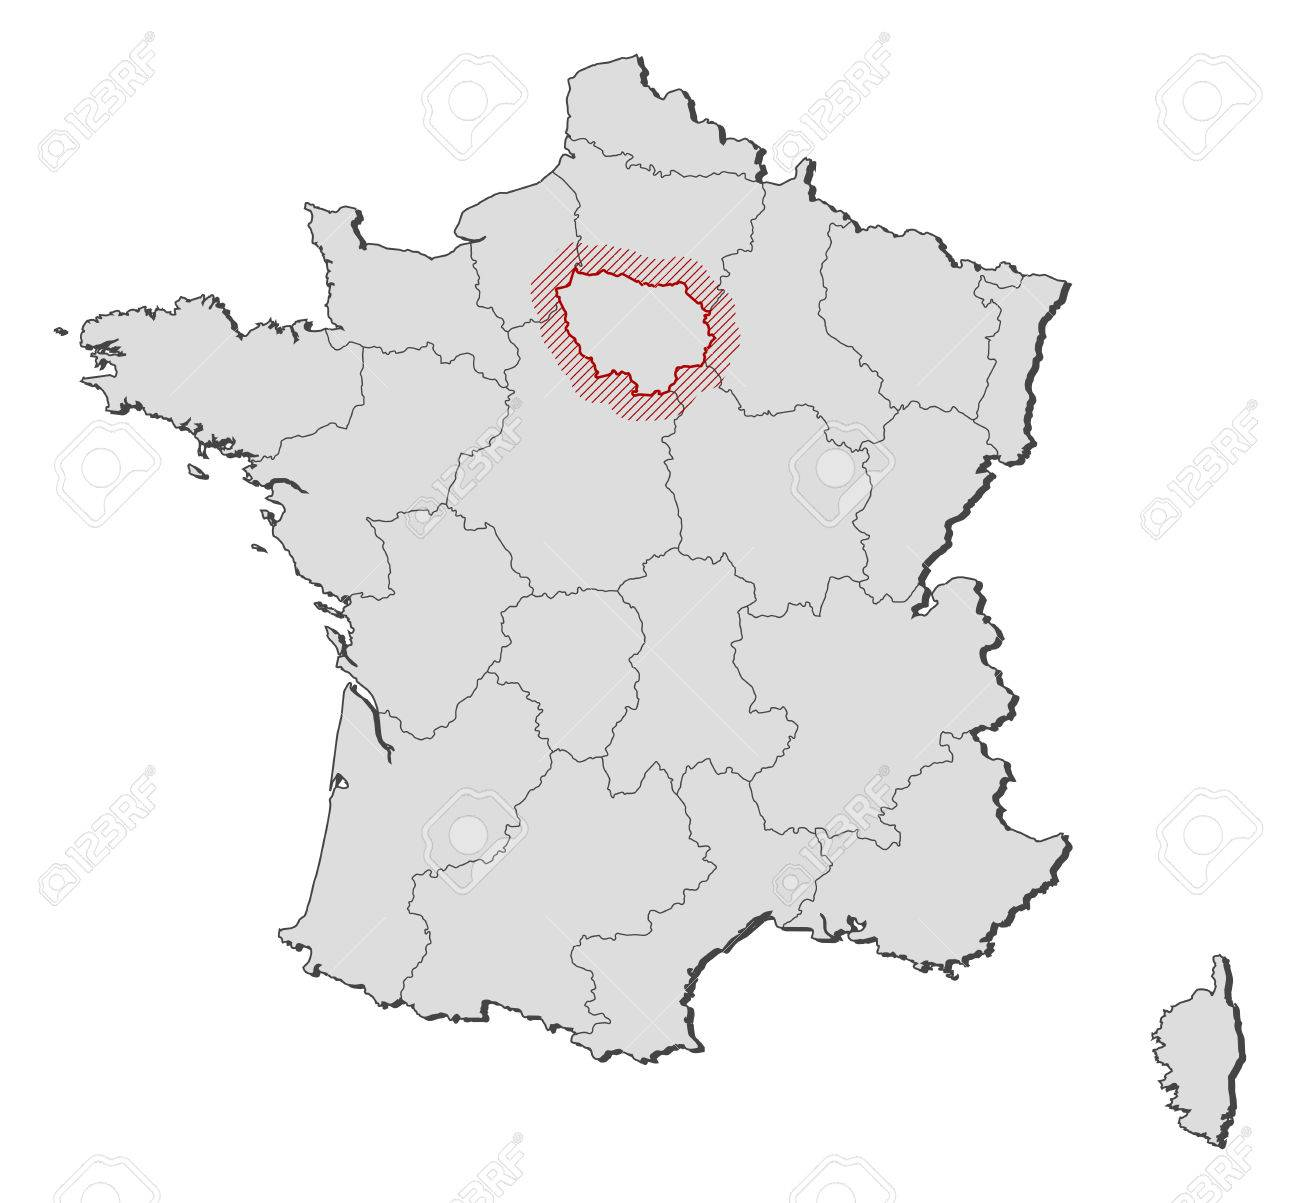 Map Of France Provinces.Map Of France With The Provinces Ile De France Is Highlighted